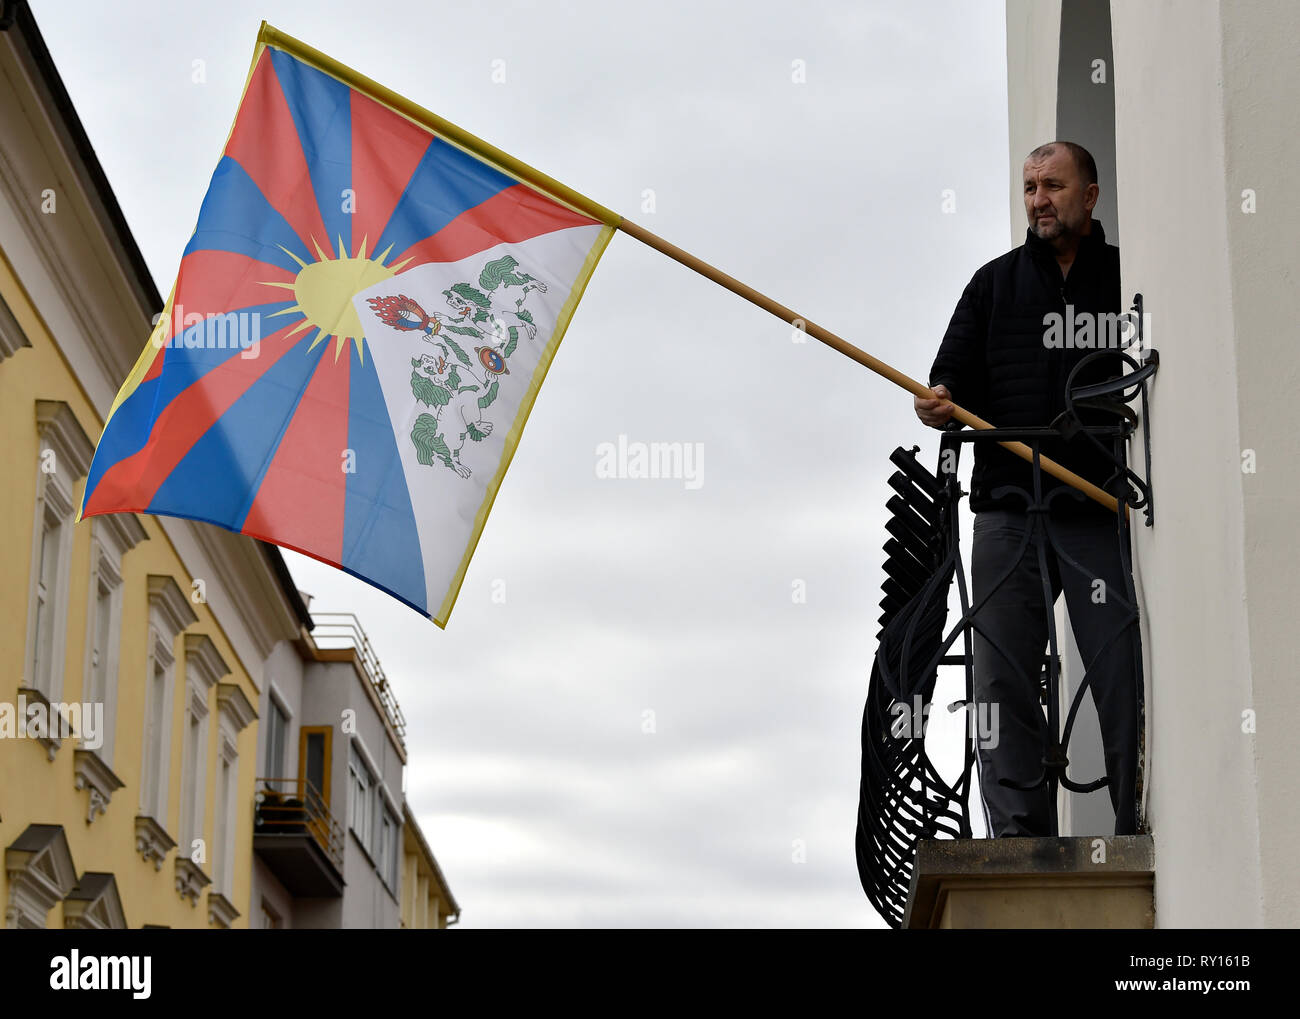 Kromeriz, Czech Republic. 10th Mar, 2019. City councilors hanged up the Tibetan flag on the town hall in Kromeriz, Czech Republic, on March 10, 2019, as a symbolic reminder of the anti-Chinese uprising in 1959. Credit: Dalibor Gluck/CTK Photo/Alamy Live News Stock Photo